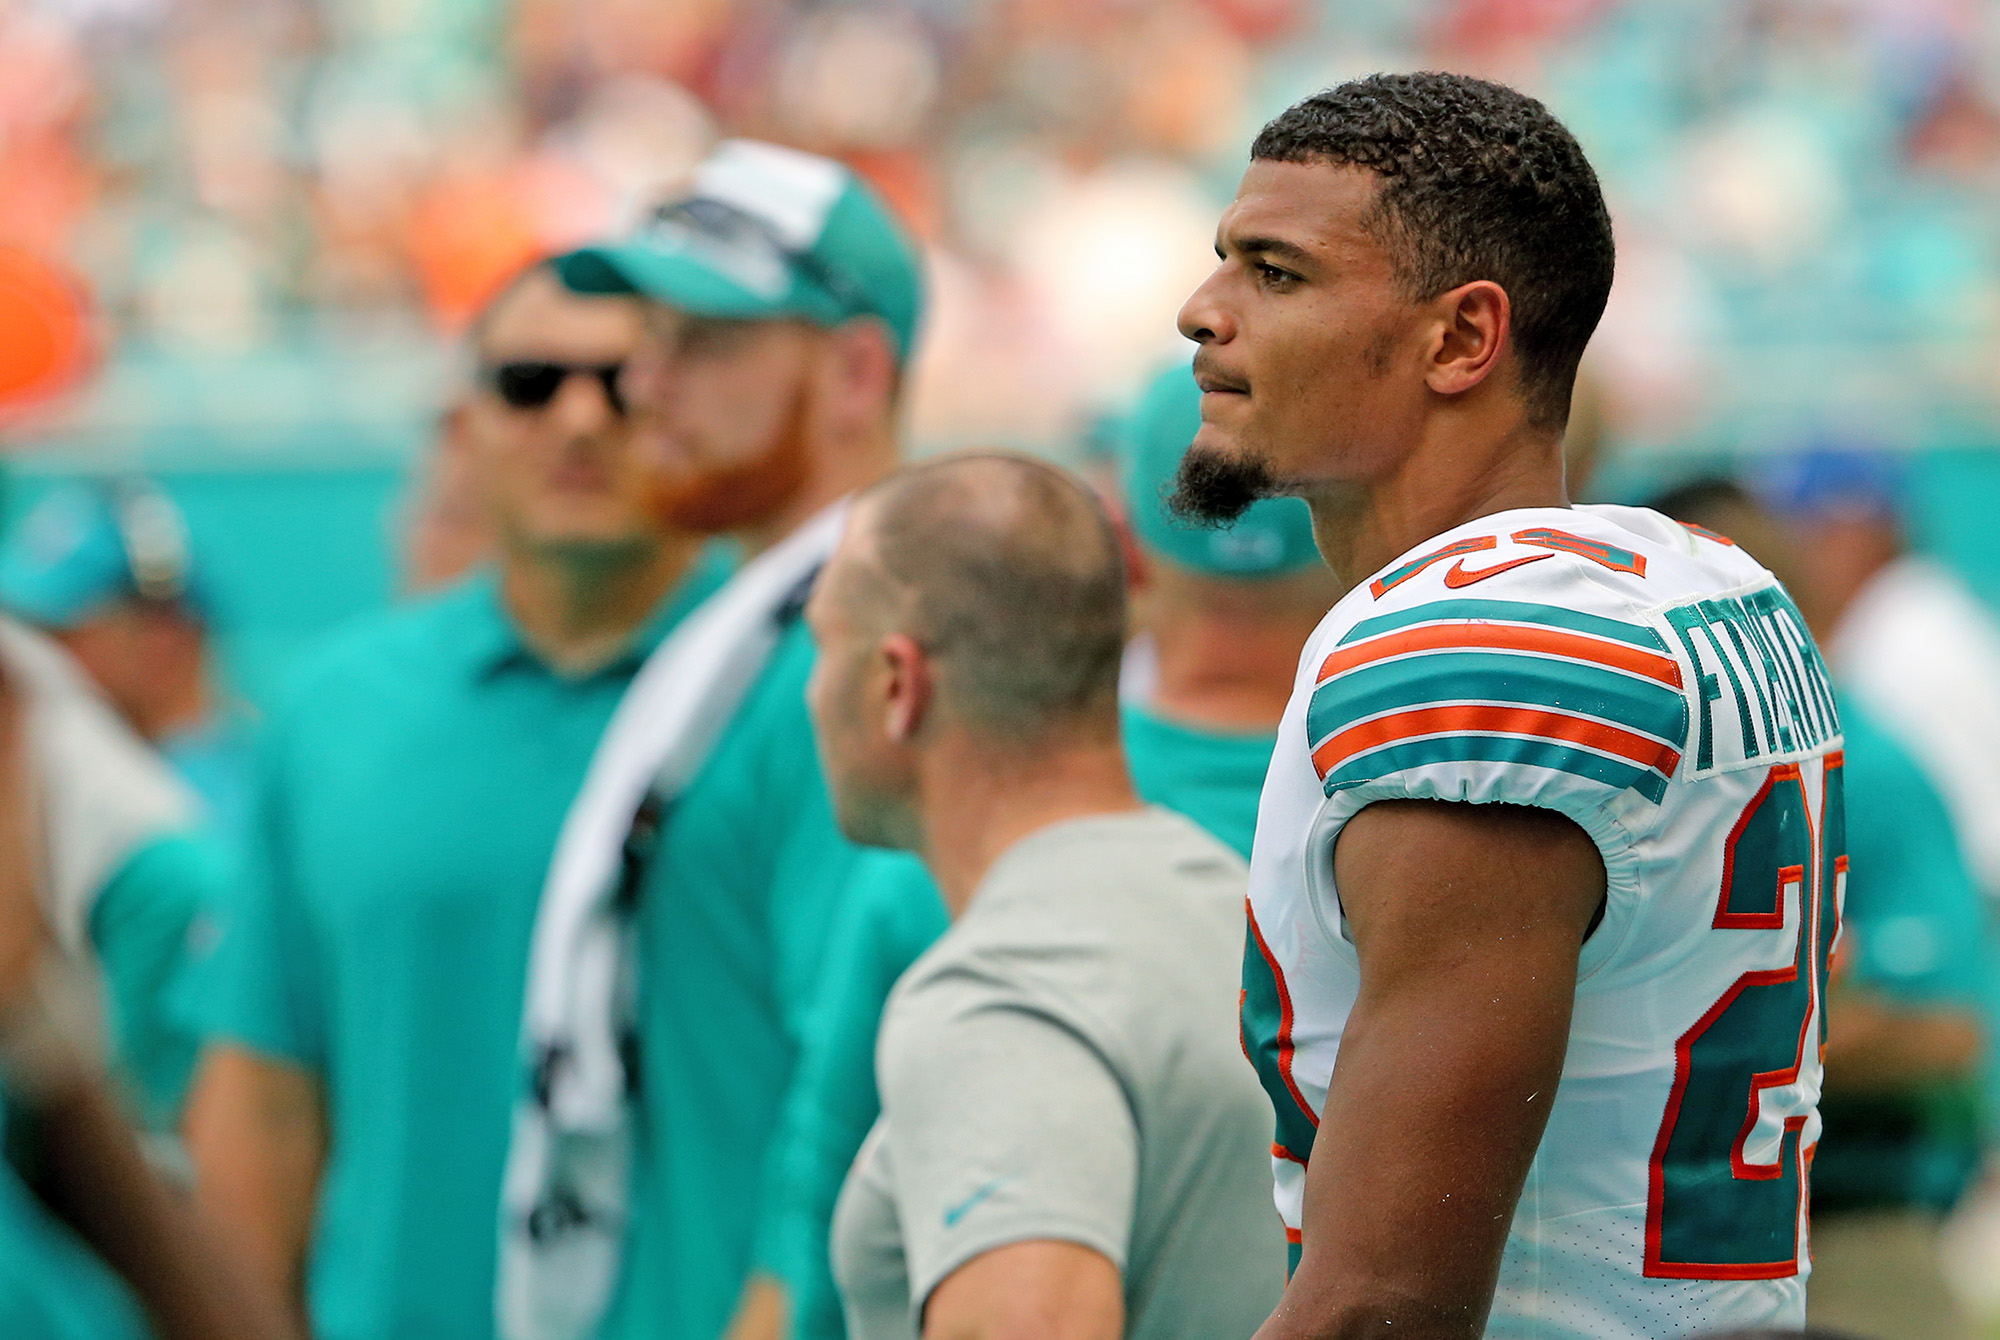 Minkah Fitzpatrick stands on the sideline during a Dolphins game